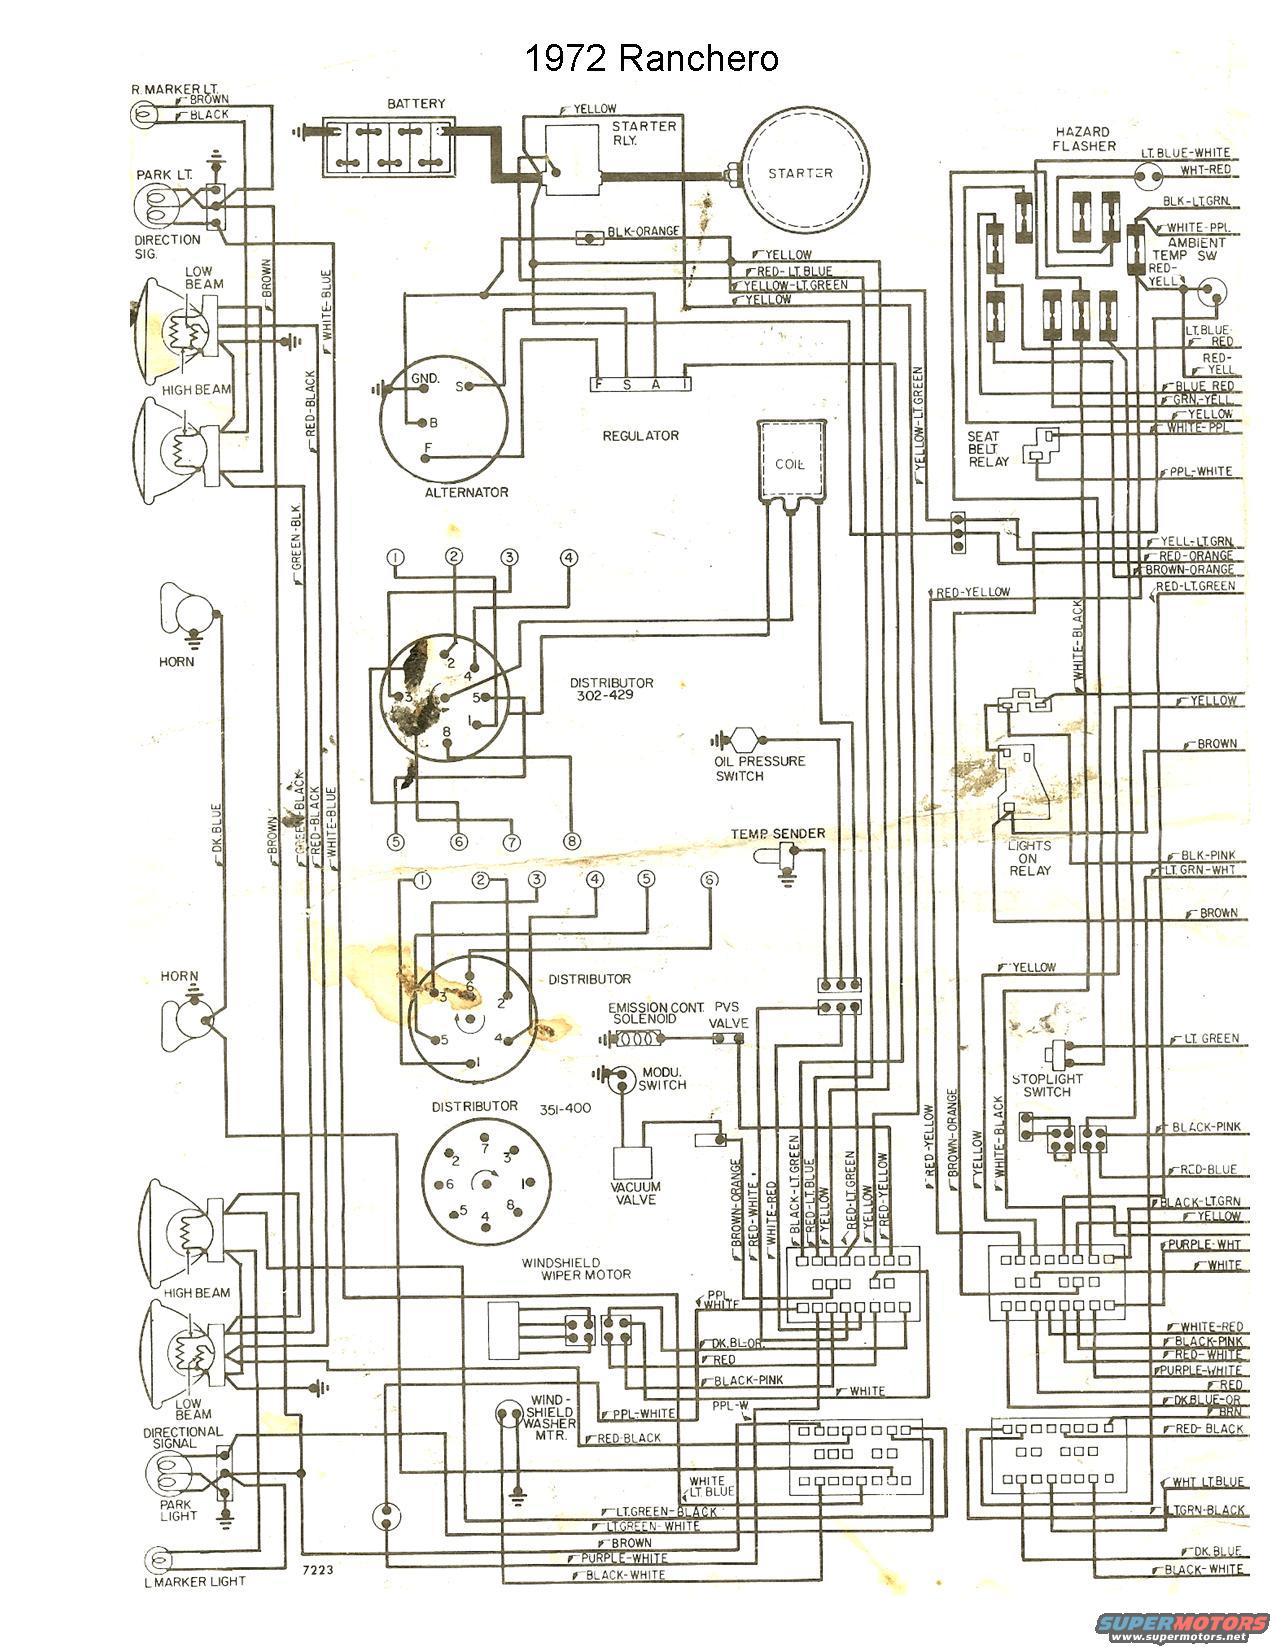 1972 ranchero 1 72 '76 wiring diagrams ranchero us 1976 ford torino wiring diagram at bakdesigns.co